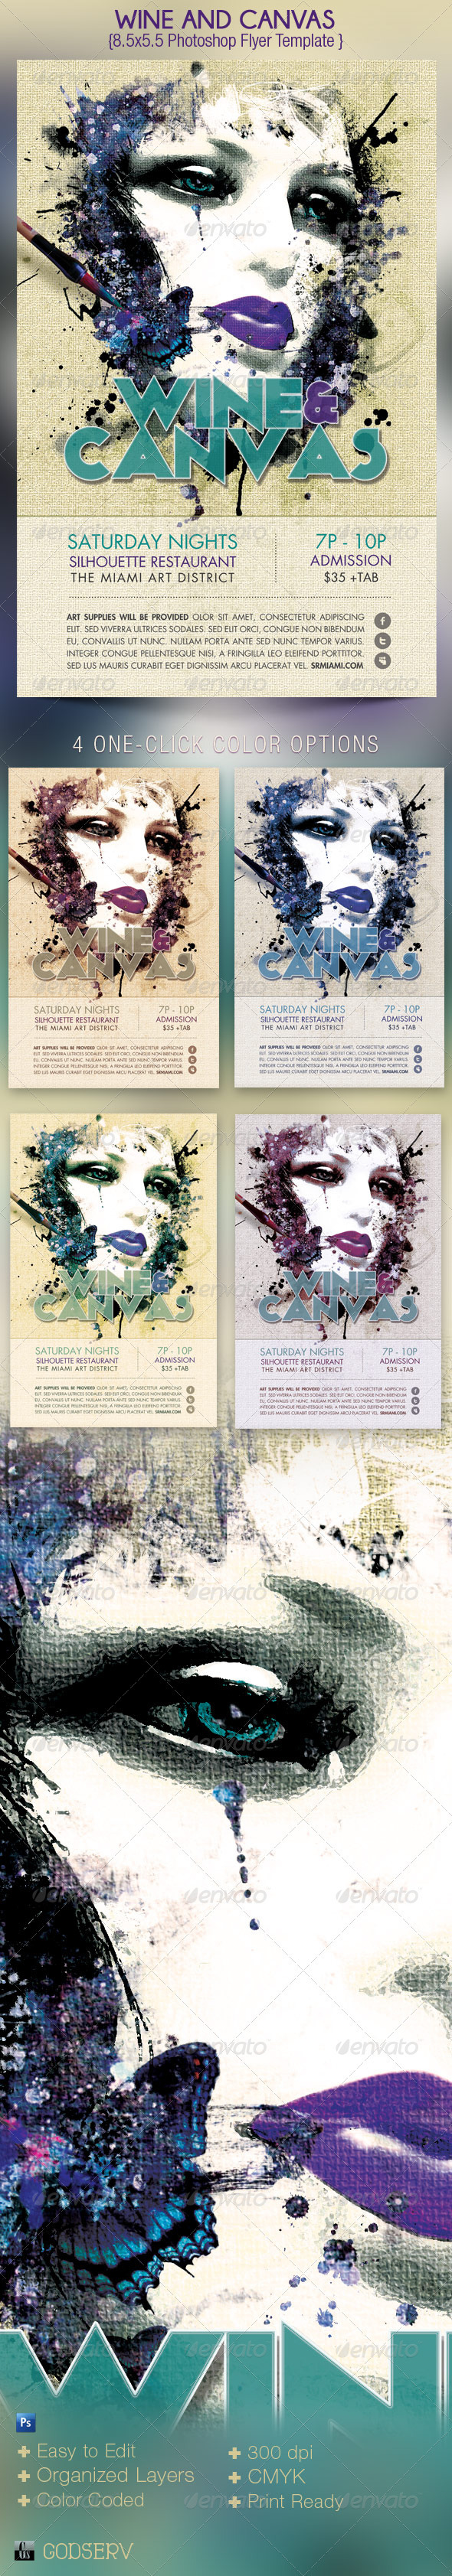 Wine and Canvas Art Event Flyer Template - Events Flyers